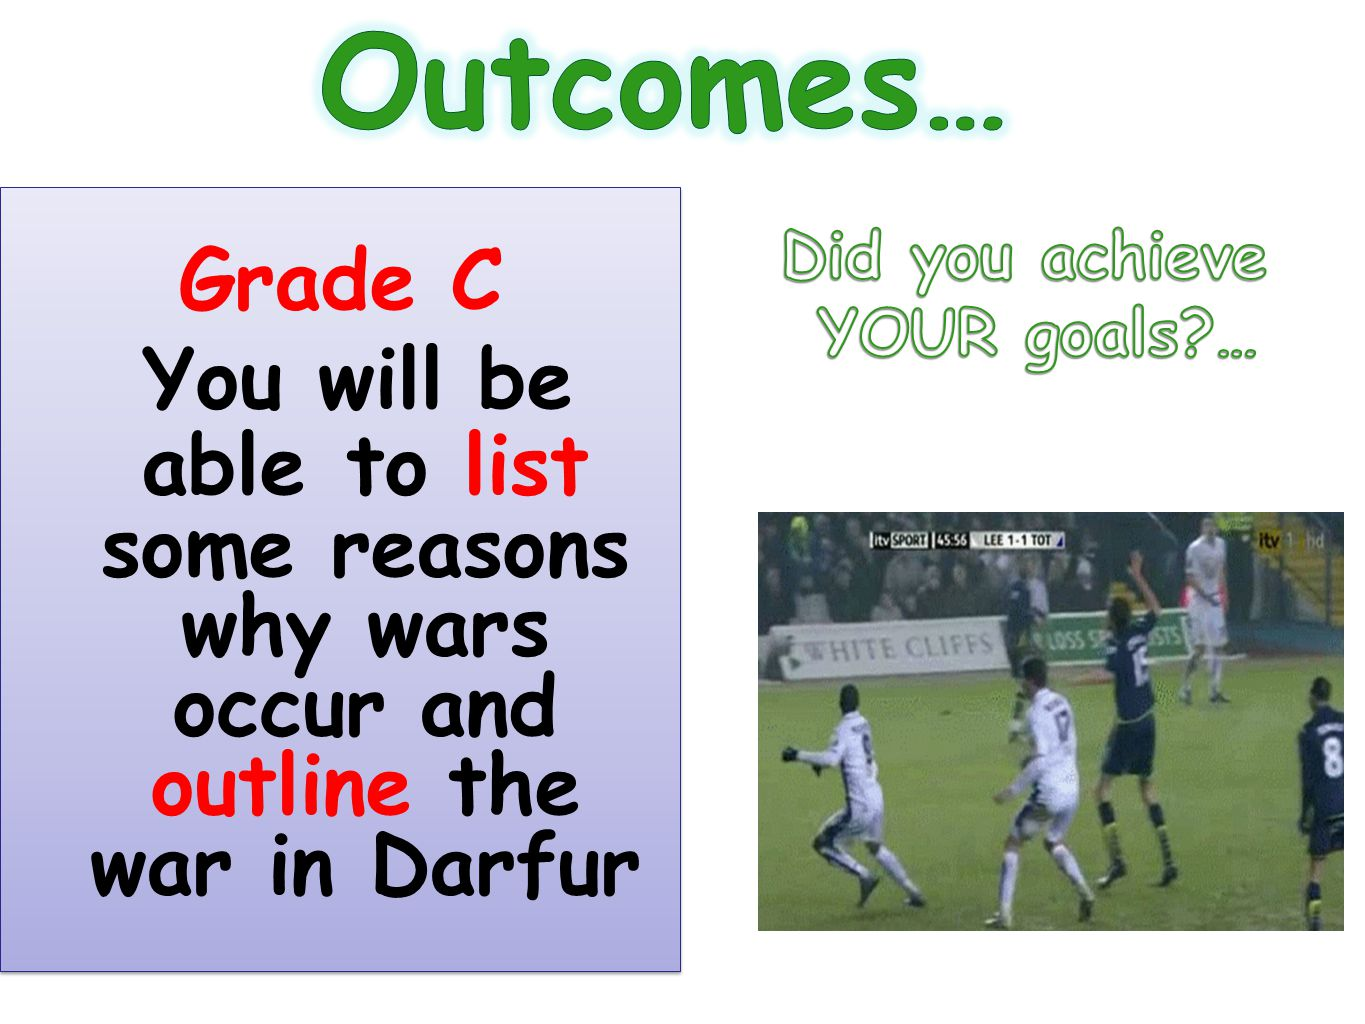 Outcomes… Grade C. You will be able to list some reasons why wars occur and outline the war in Darfur.